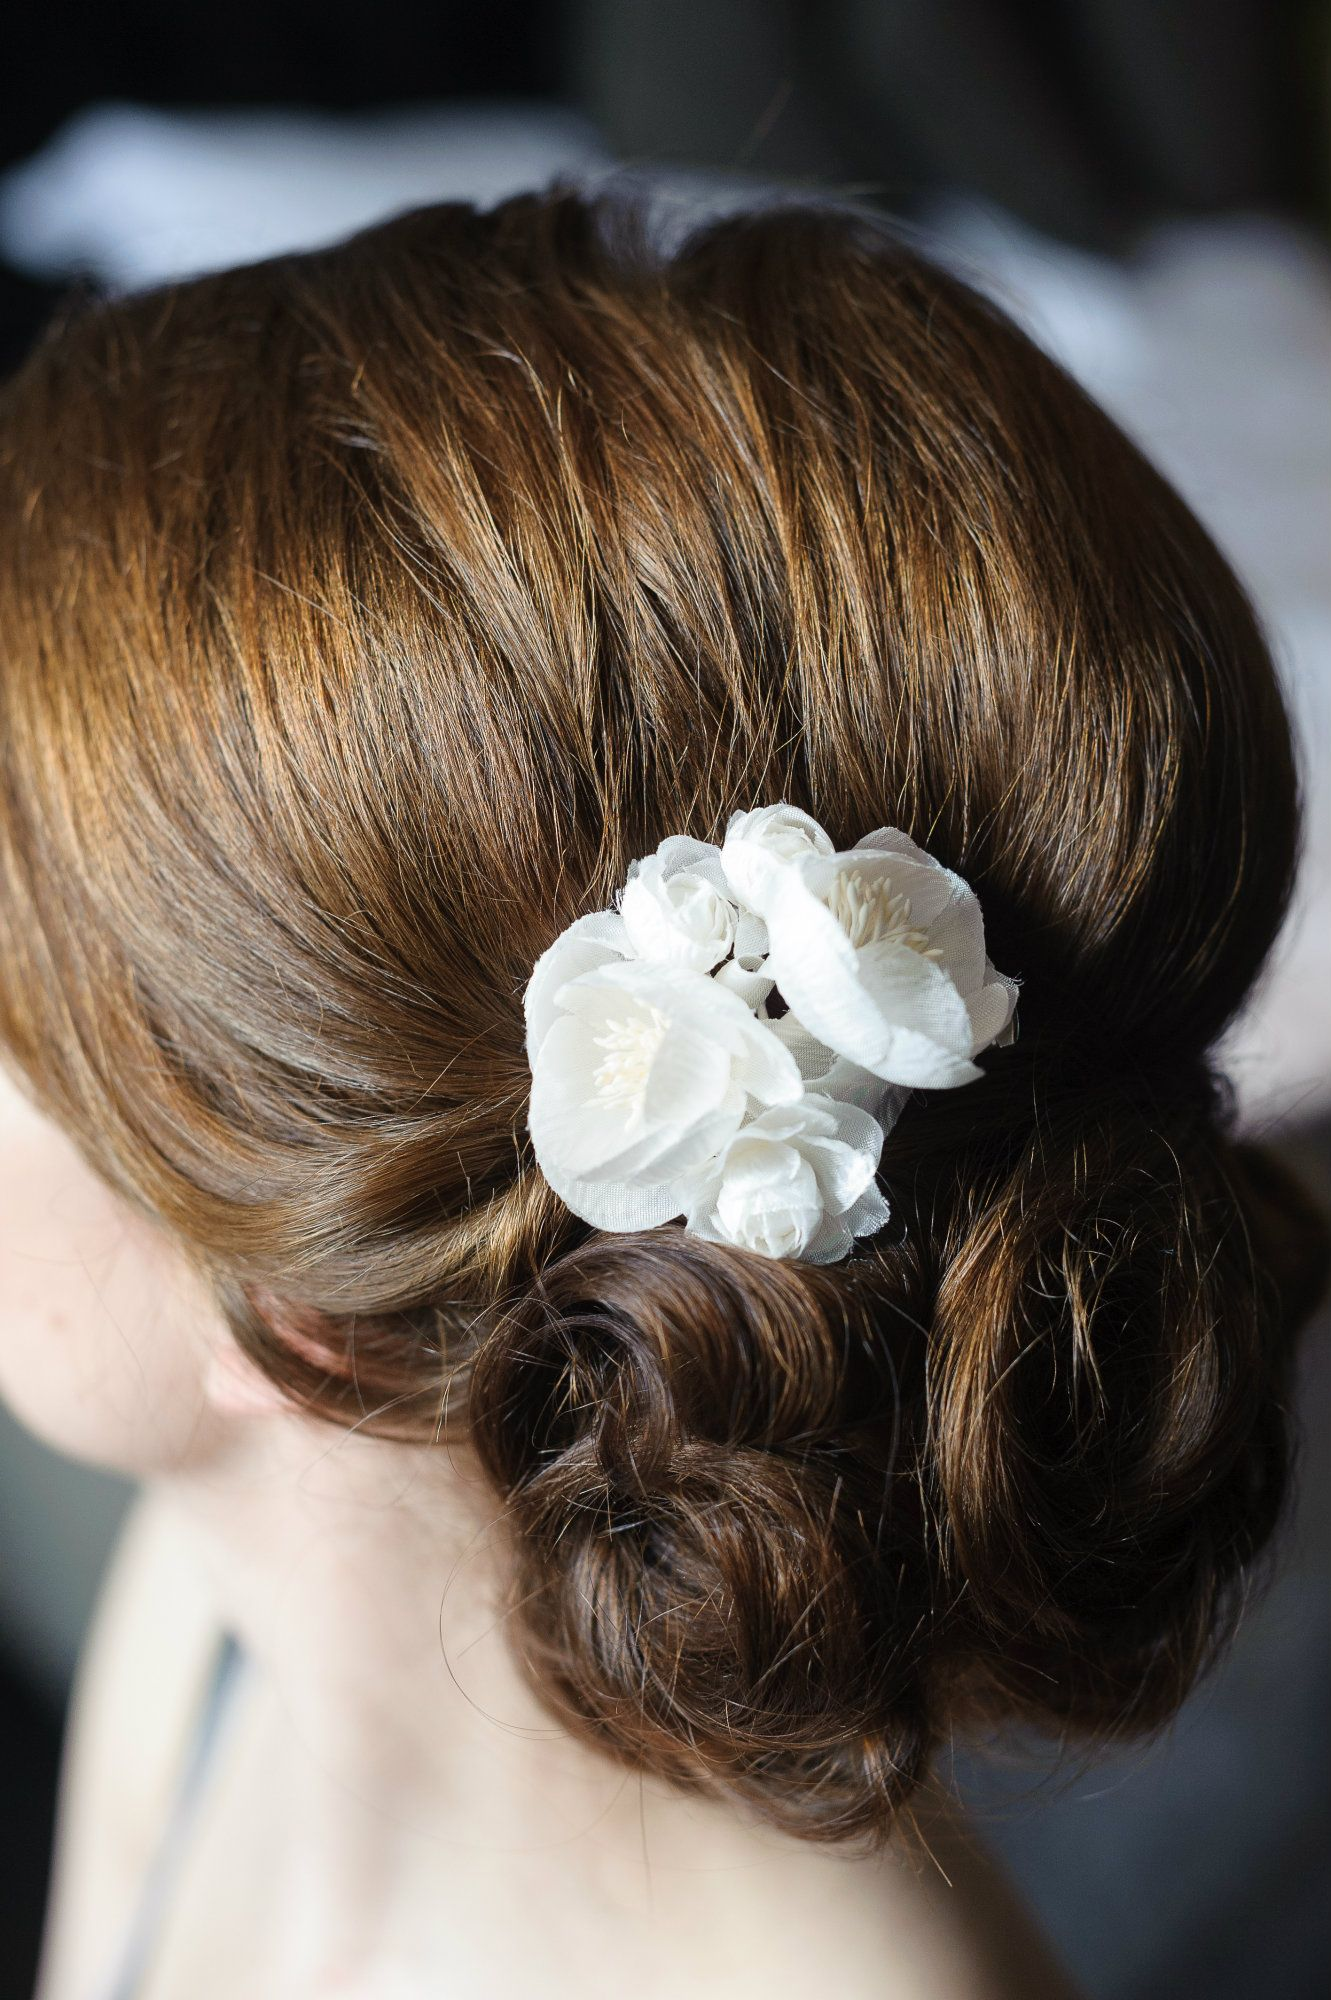 Cheltenham-Northleach-mobile-wedding hairdresser-LREN-1